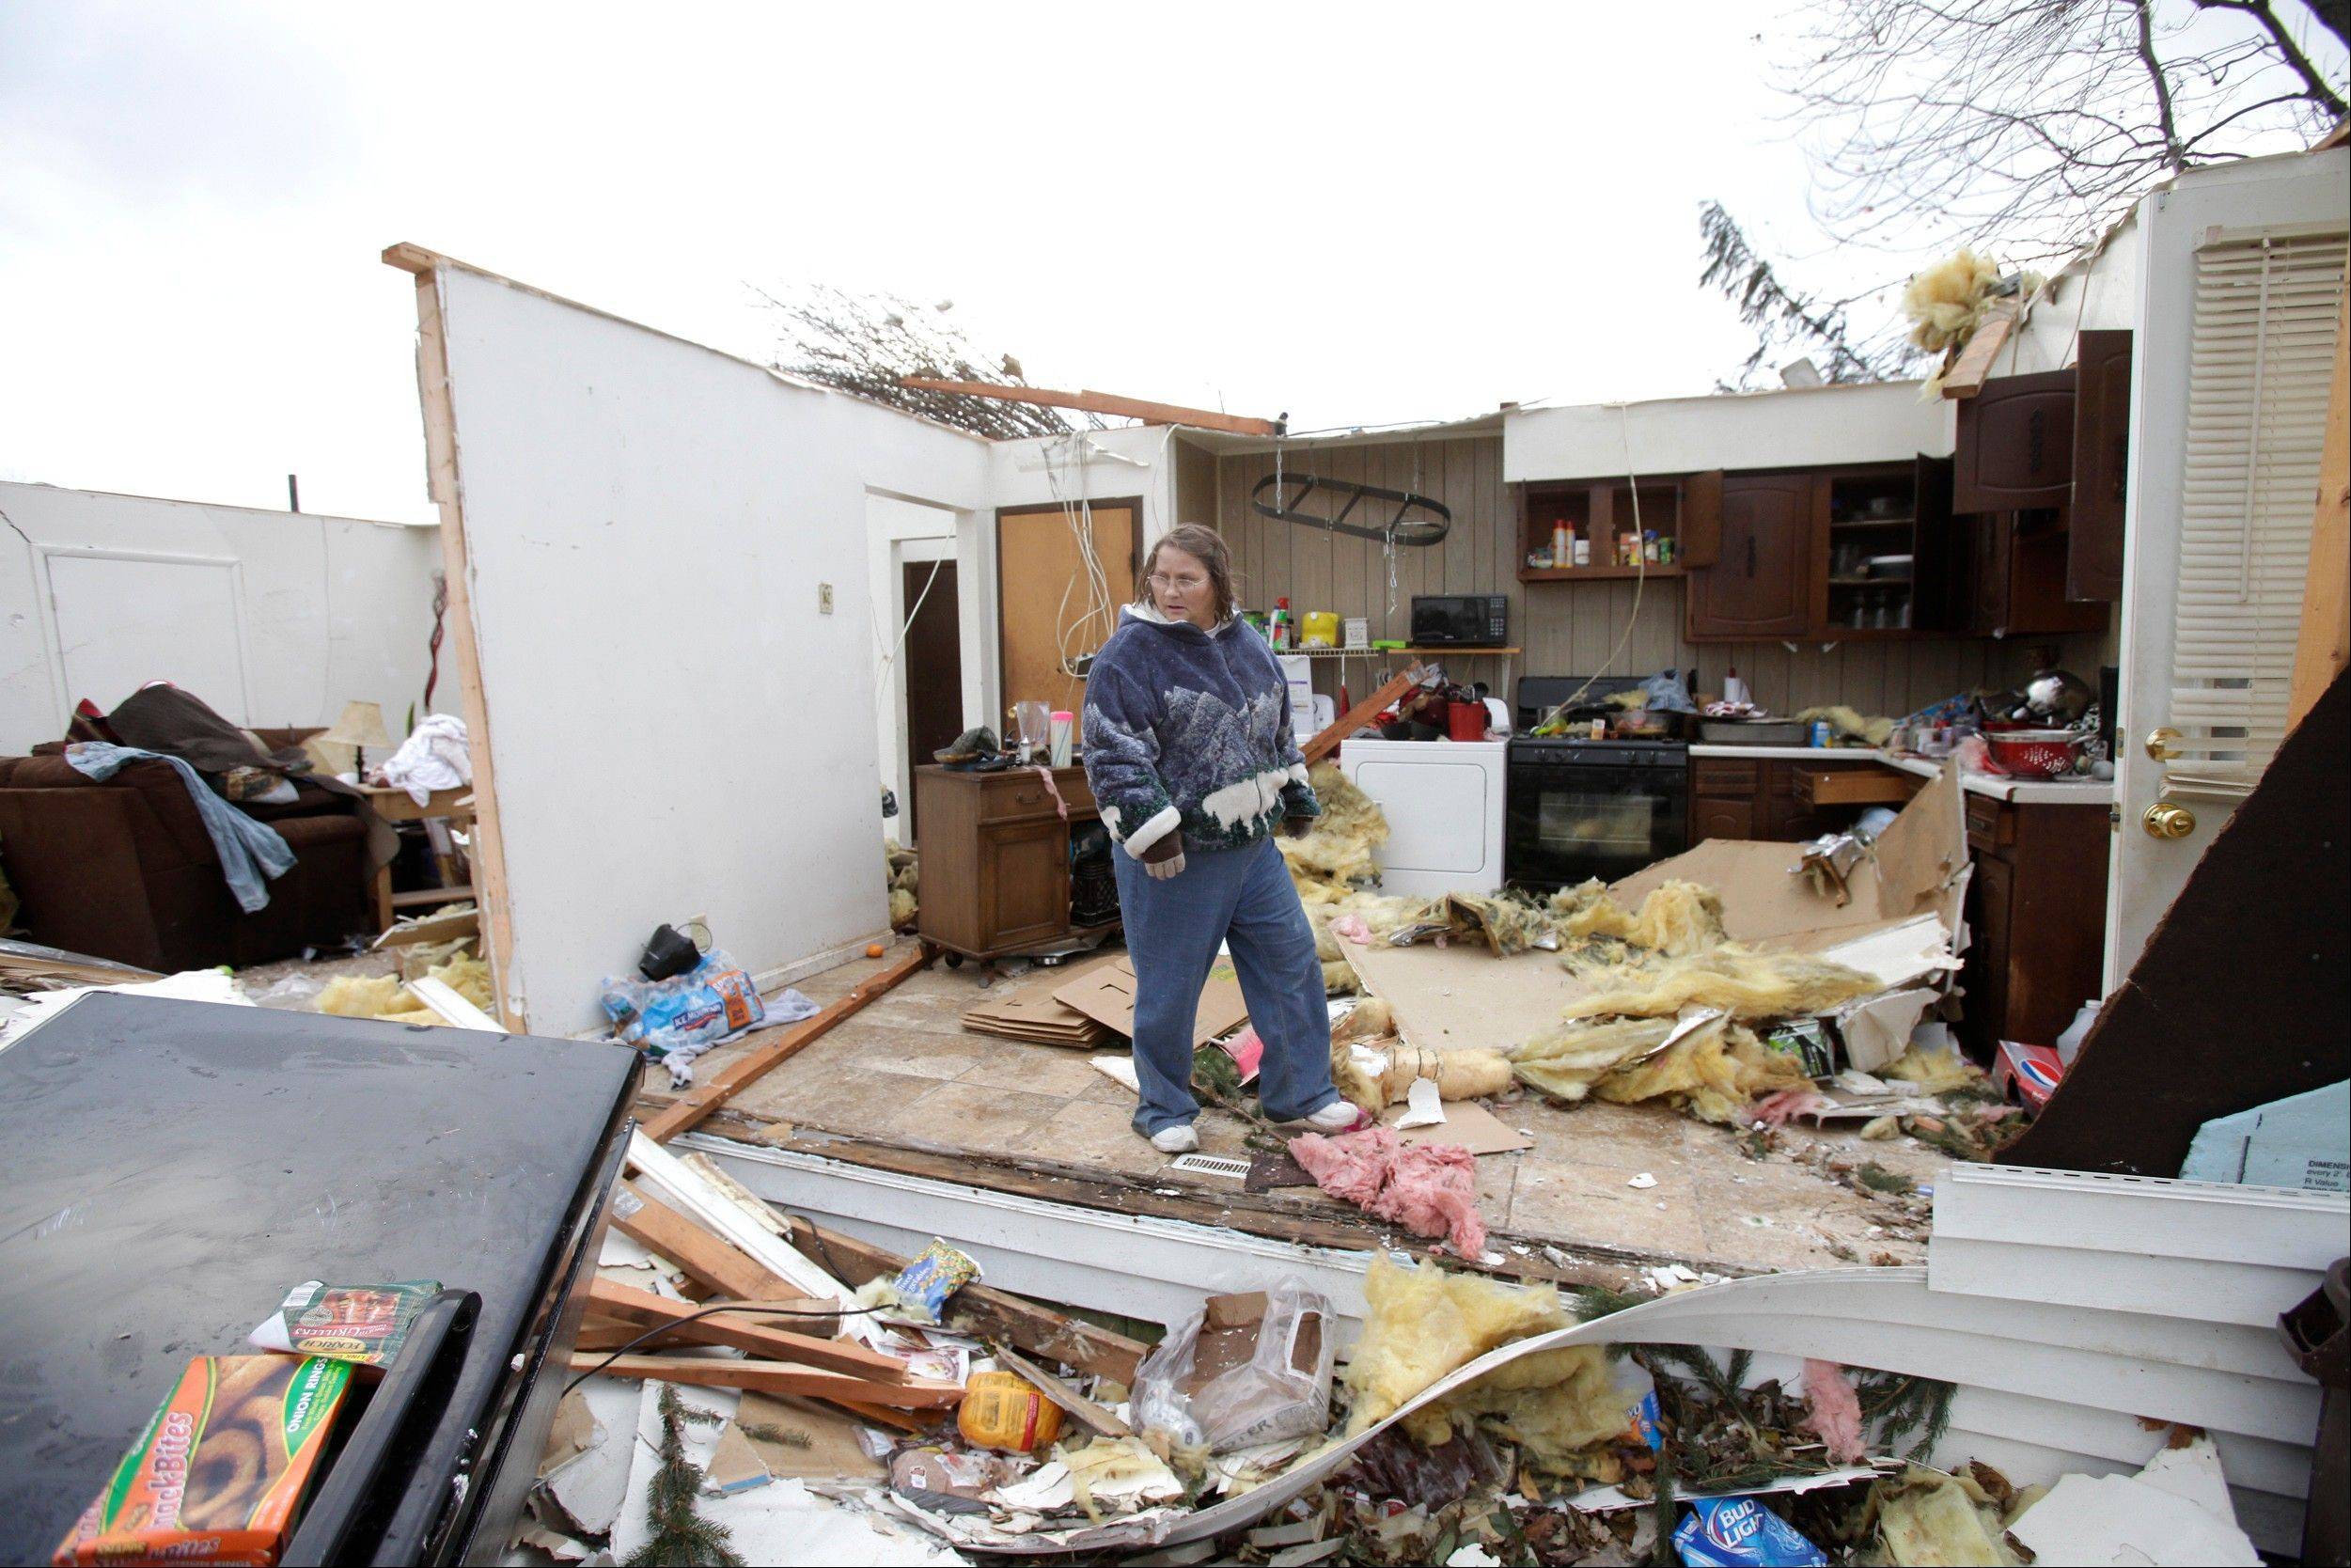 Georgia Sterling walks through what is left of her son's kitchen, Monday, Nov. 18, 2013, after strong winds destroyed this home in Jerry City, Ohio. Sterling's son, Joshua Hopple, and his wife, Carol, were both in the house when high winds ripped through the home. Dozens of tornadoes and intense thunderstorms swept across the U.S. Midwest on Sunday, unleashing powerful winds that flattened entire neighborhoods, flipped over cars and uprooted trees.